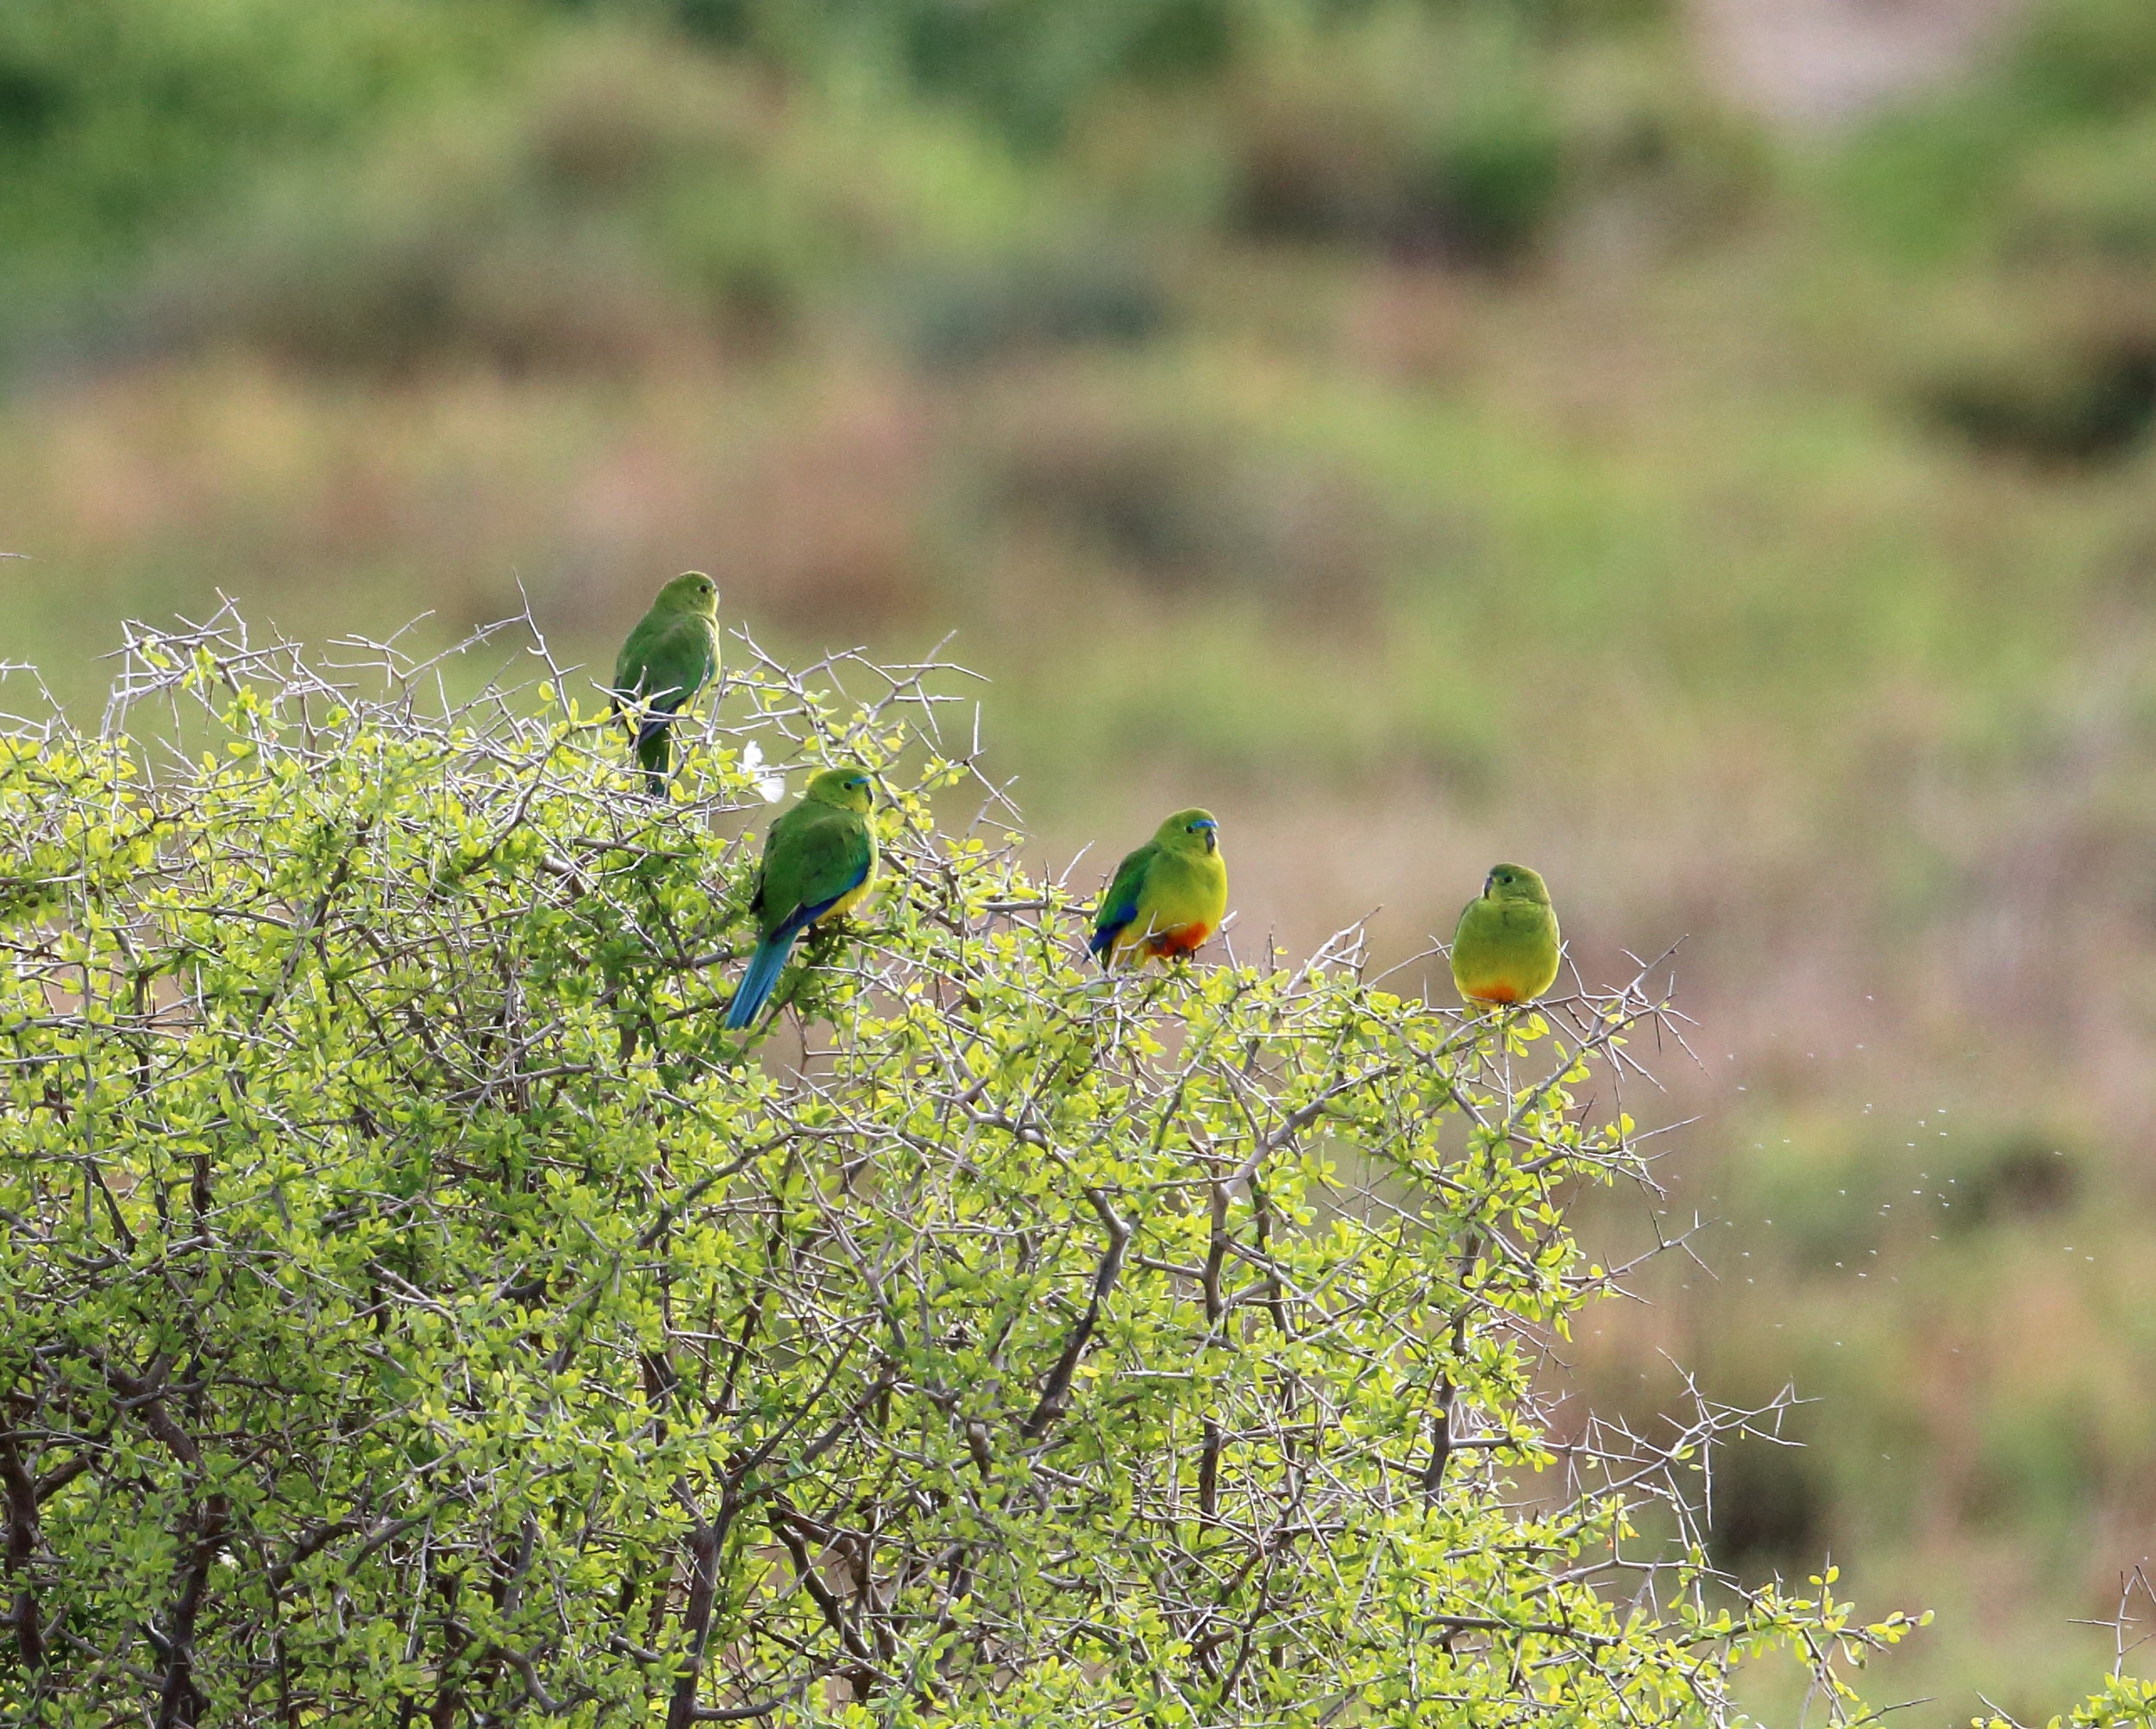 Orange-bellied Parrot. Photo by Andrew Silcocks